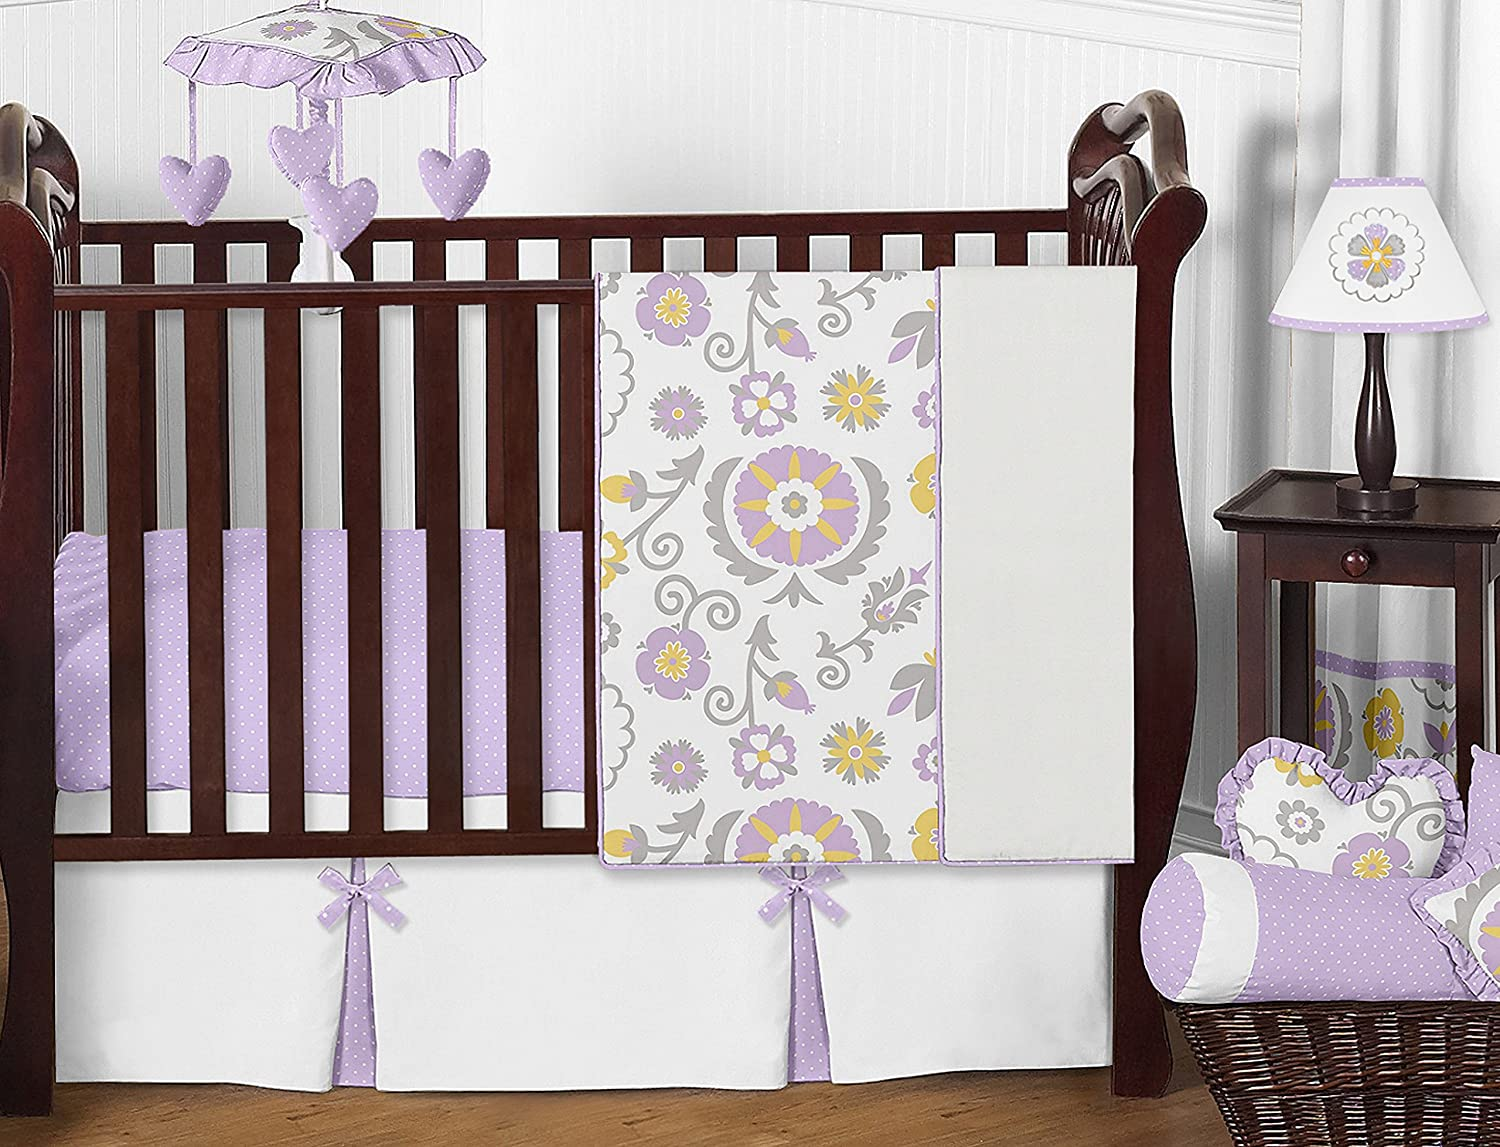 Sweet Jojo Designs Lavender And White Floral Crib Bed Skirt Dust Ruffle For Girls Suzanna Collection Baby Bedding Sets Nursery Ilsr Org